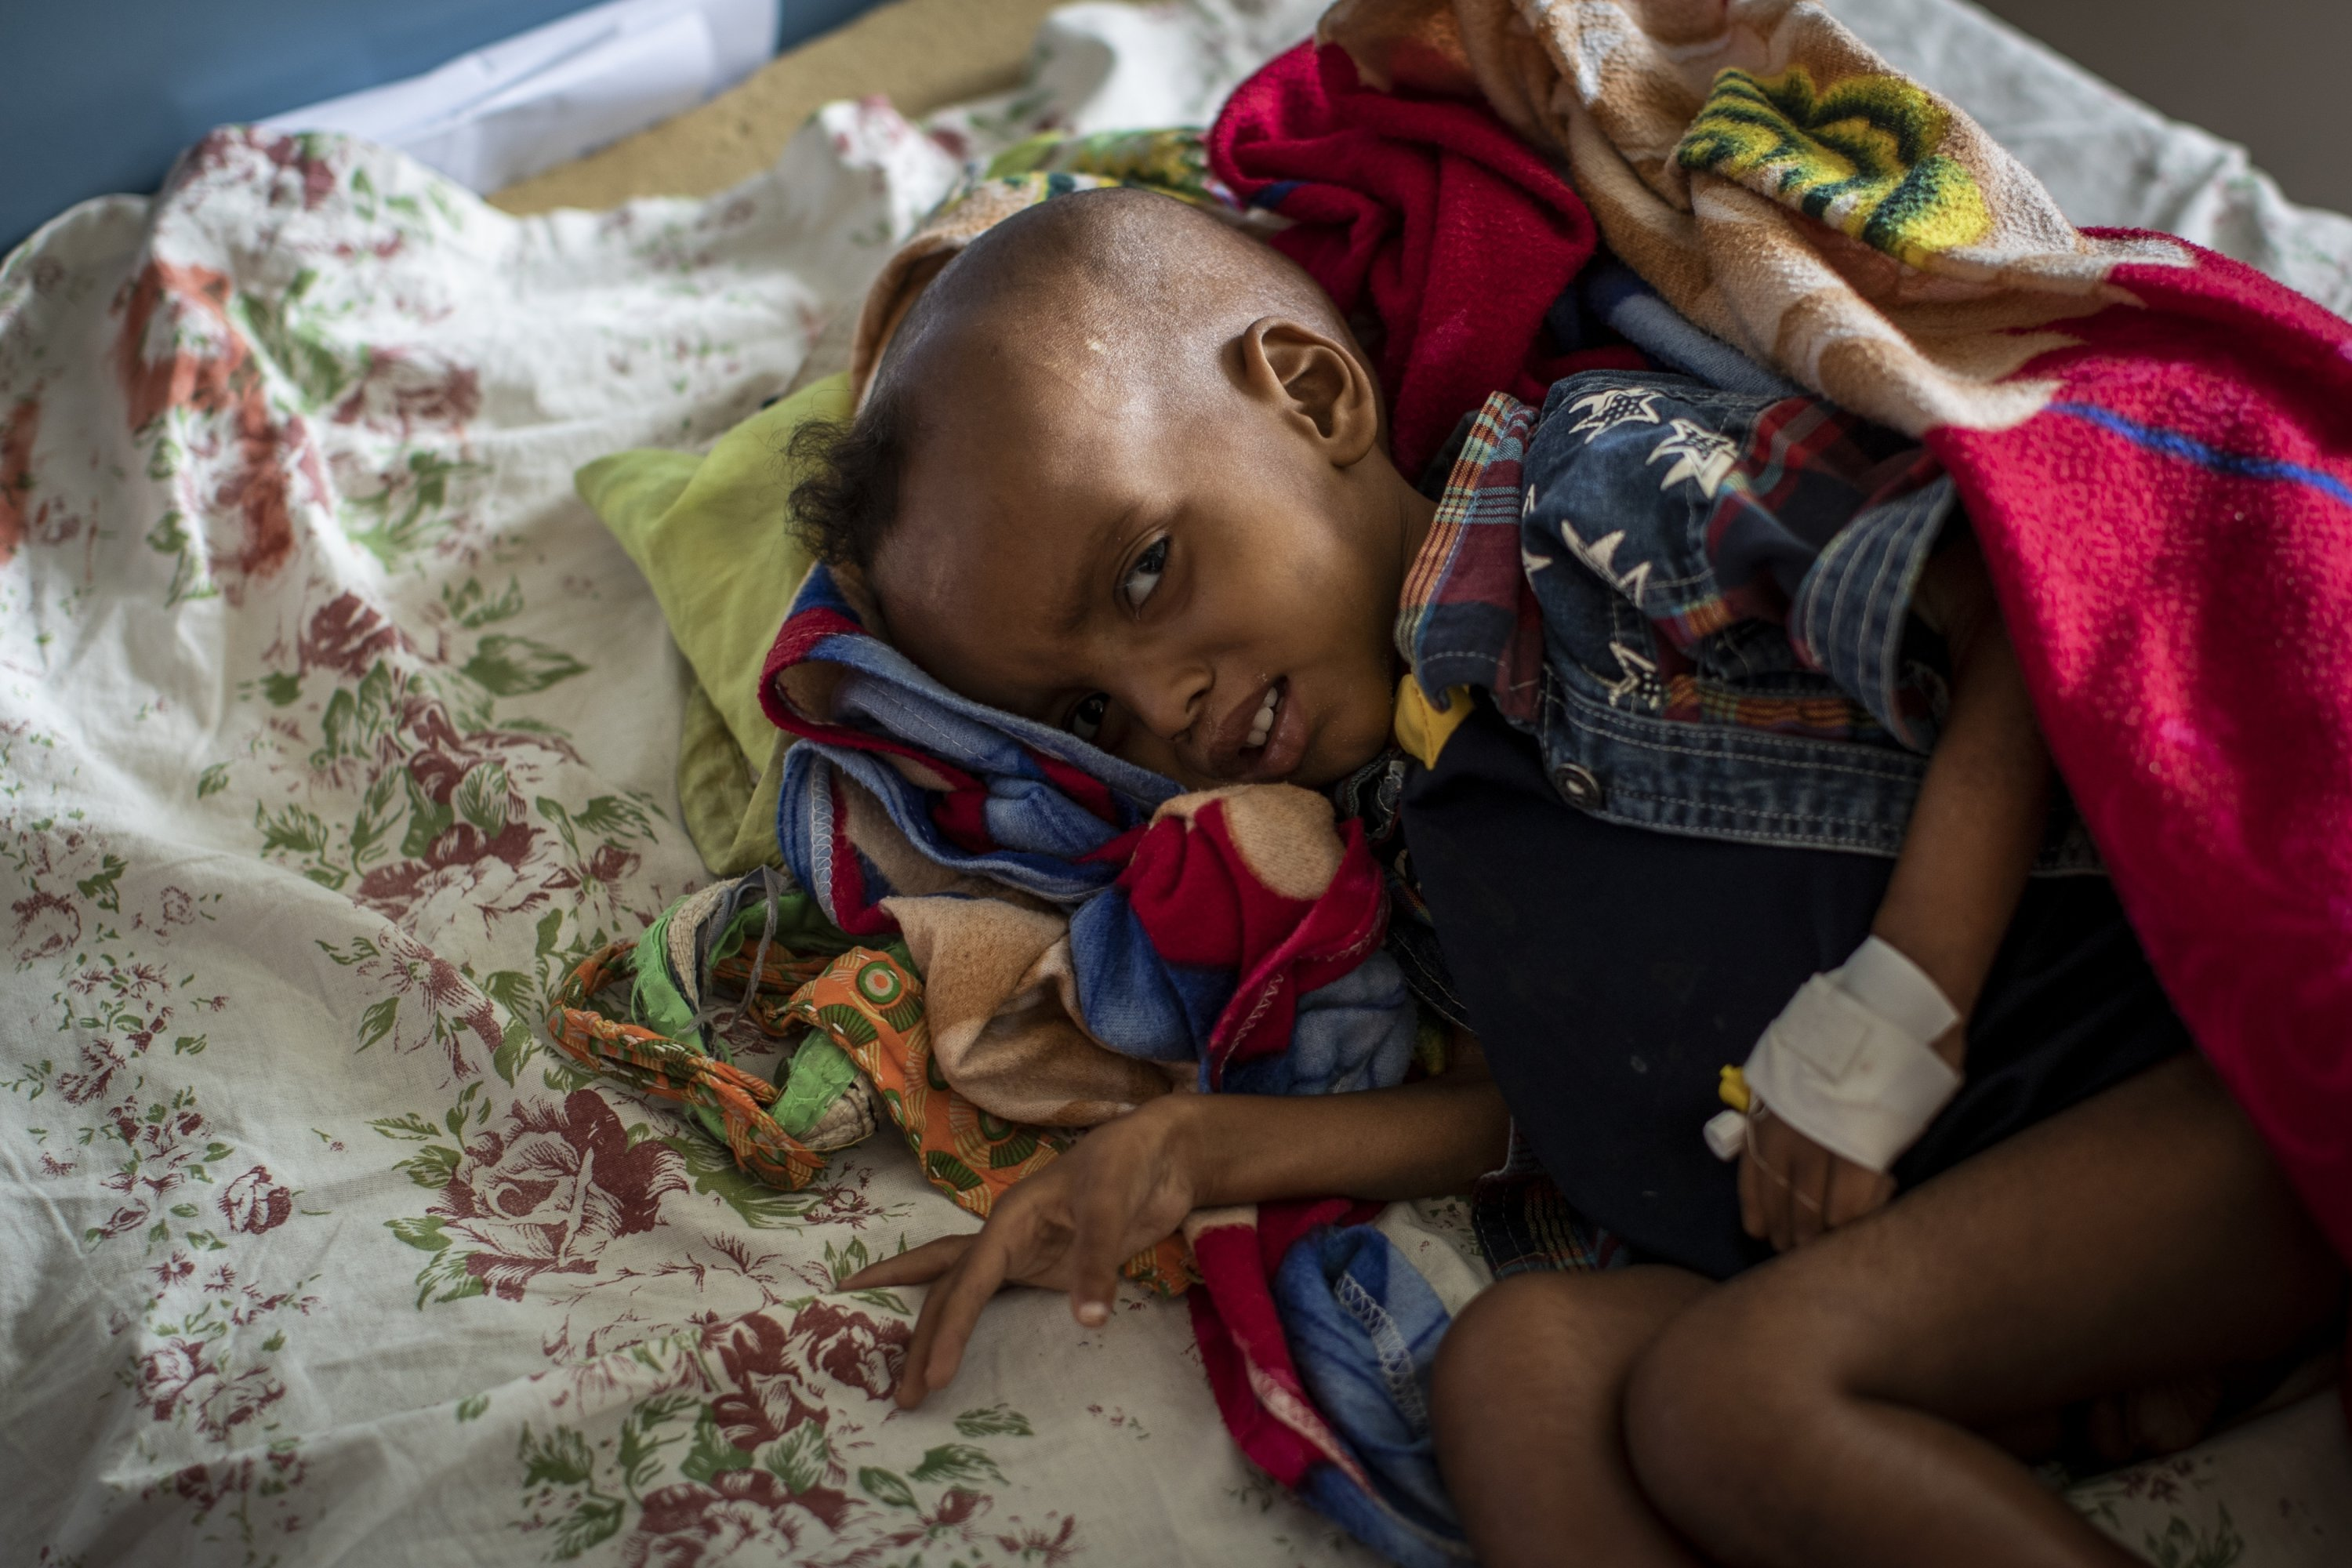 Gebre Kidan Gebrehiwet, 2, is treated for malnutrition after fleeing from the town of Abi Adi with his mother, Abeba Tesfay, at the Ayder Referral Hospital in Mekele, in the Tigray region of northern Ethiopia, May 6, 2021. (AP Photo)